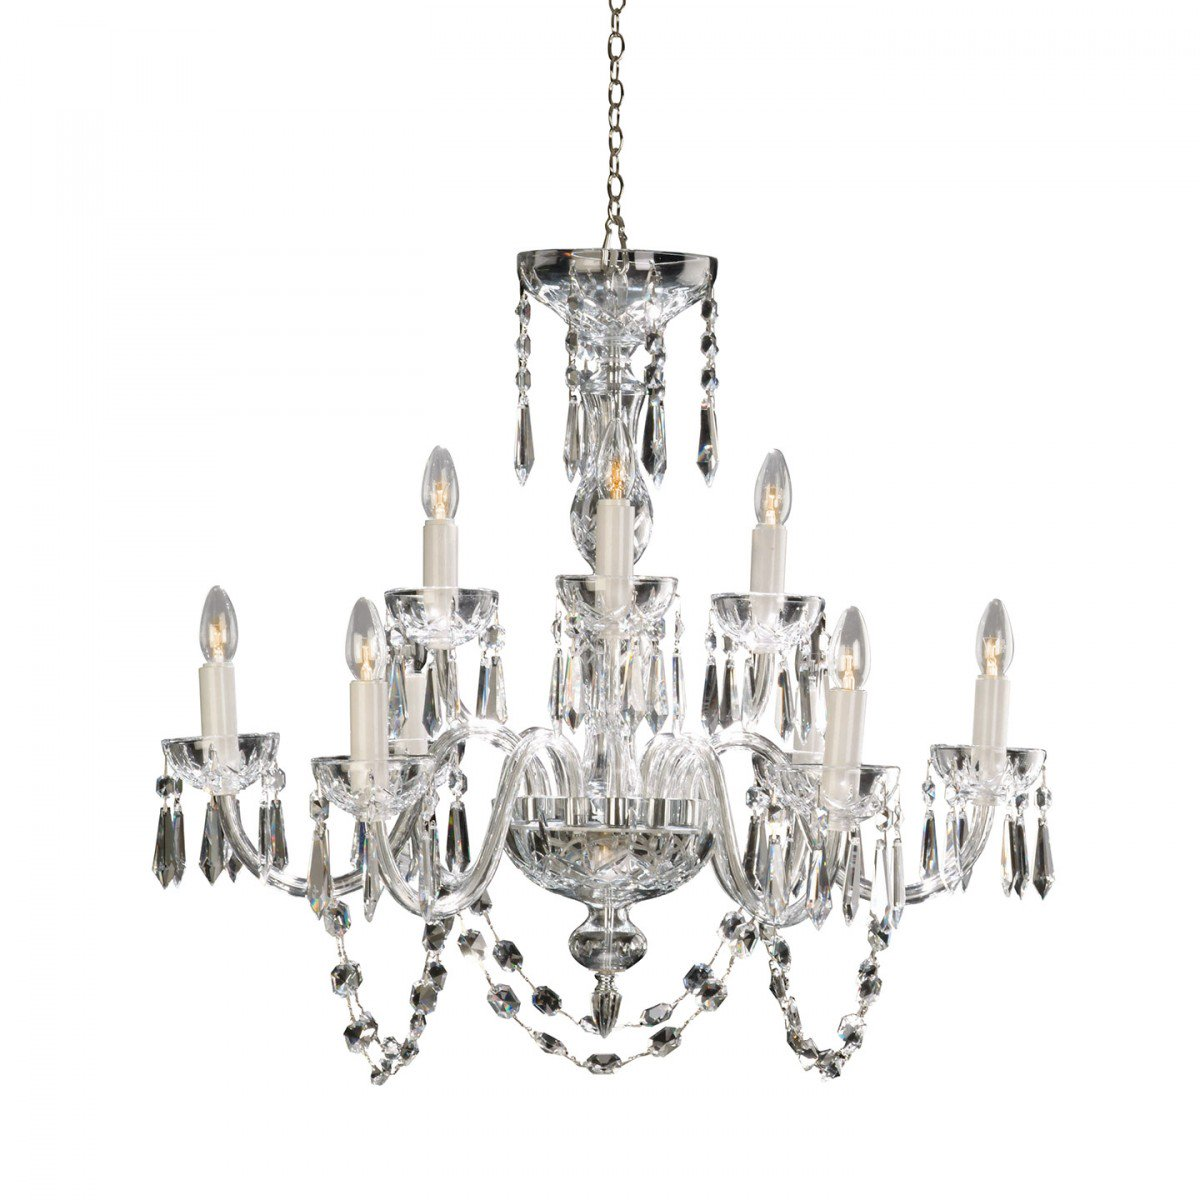 Waterford Lismore 9 Arm Crystal Glass Chandelier